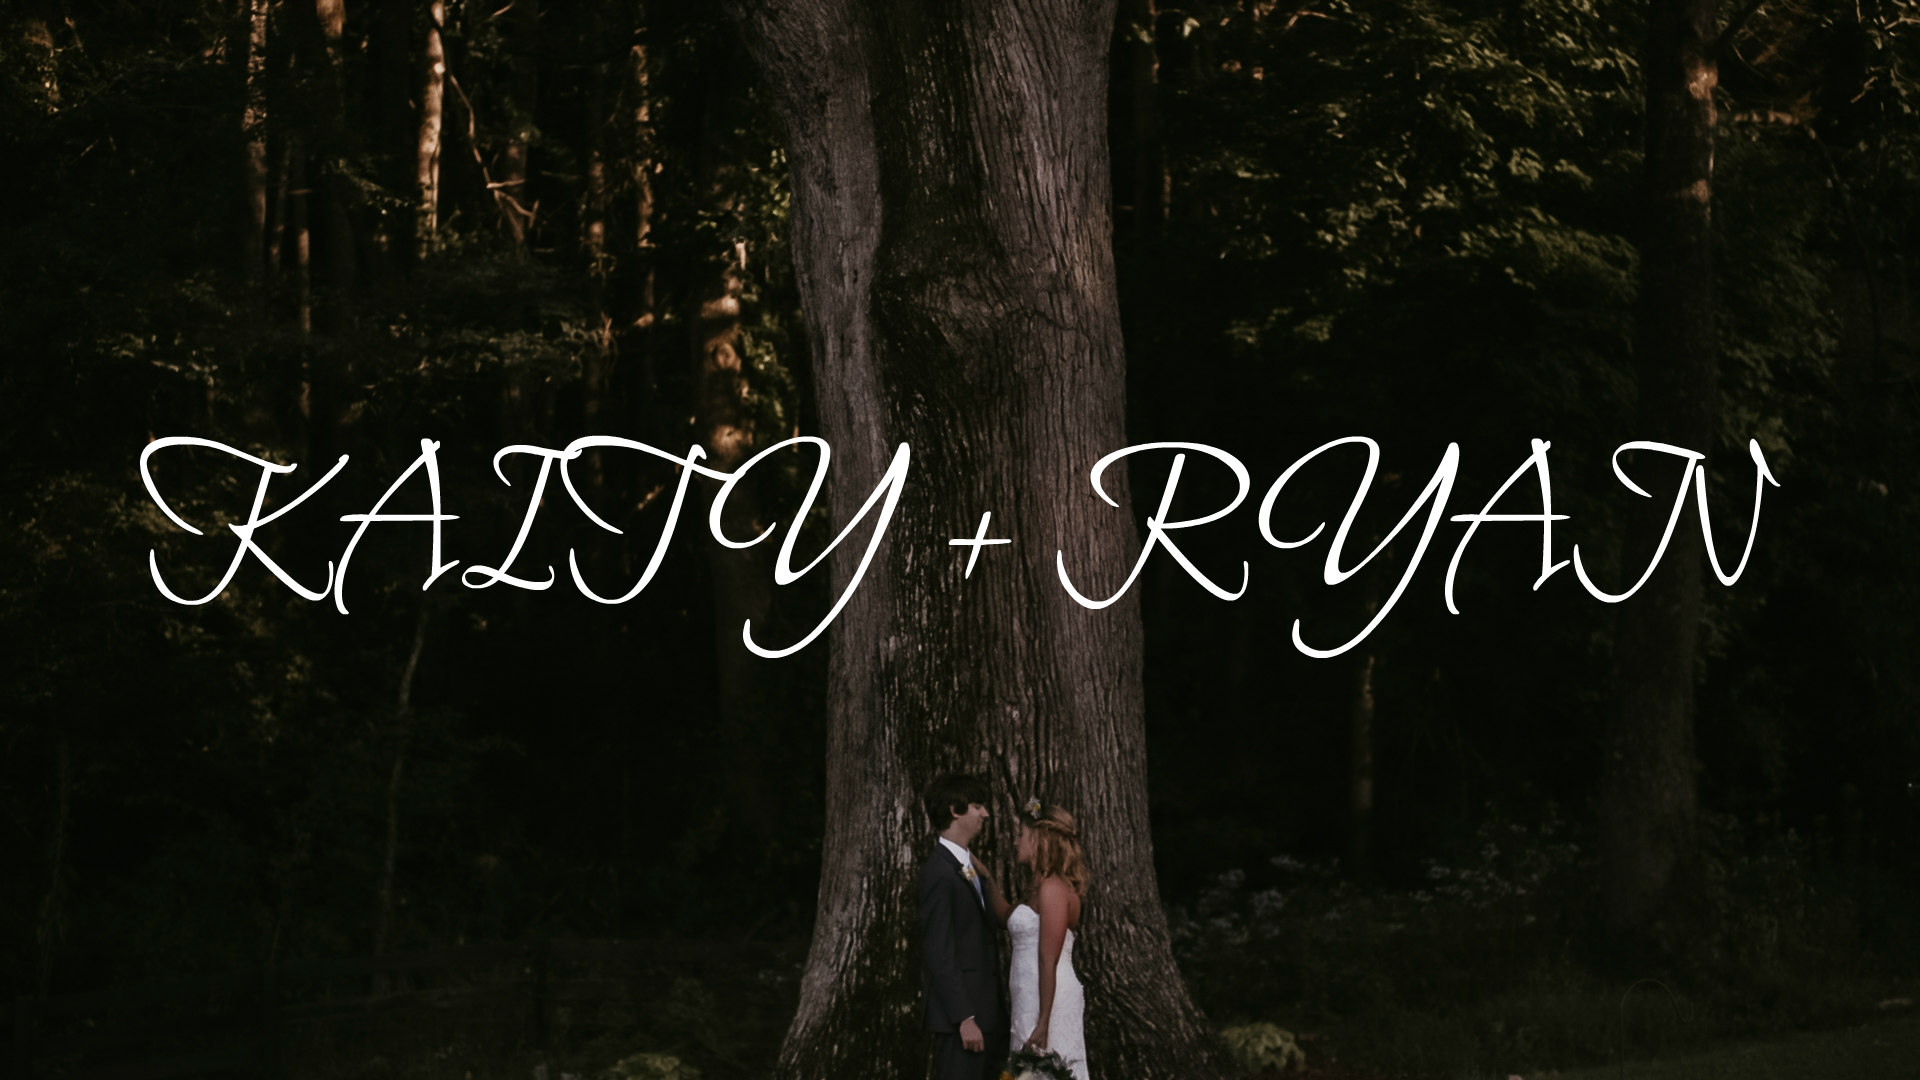 Katy + Ryan | Weaverville, North Carolina | The fields of blackberry cove